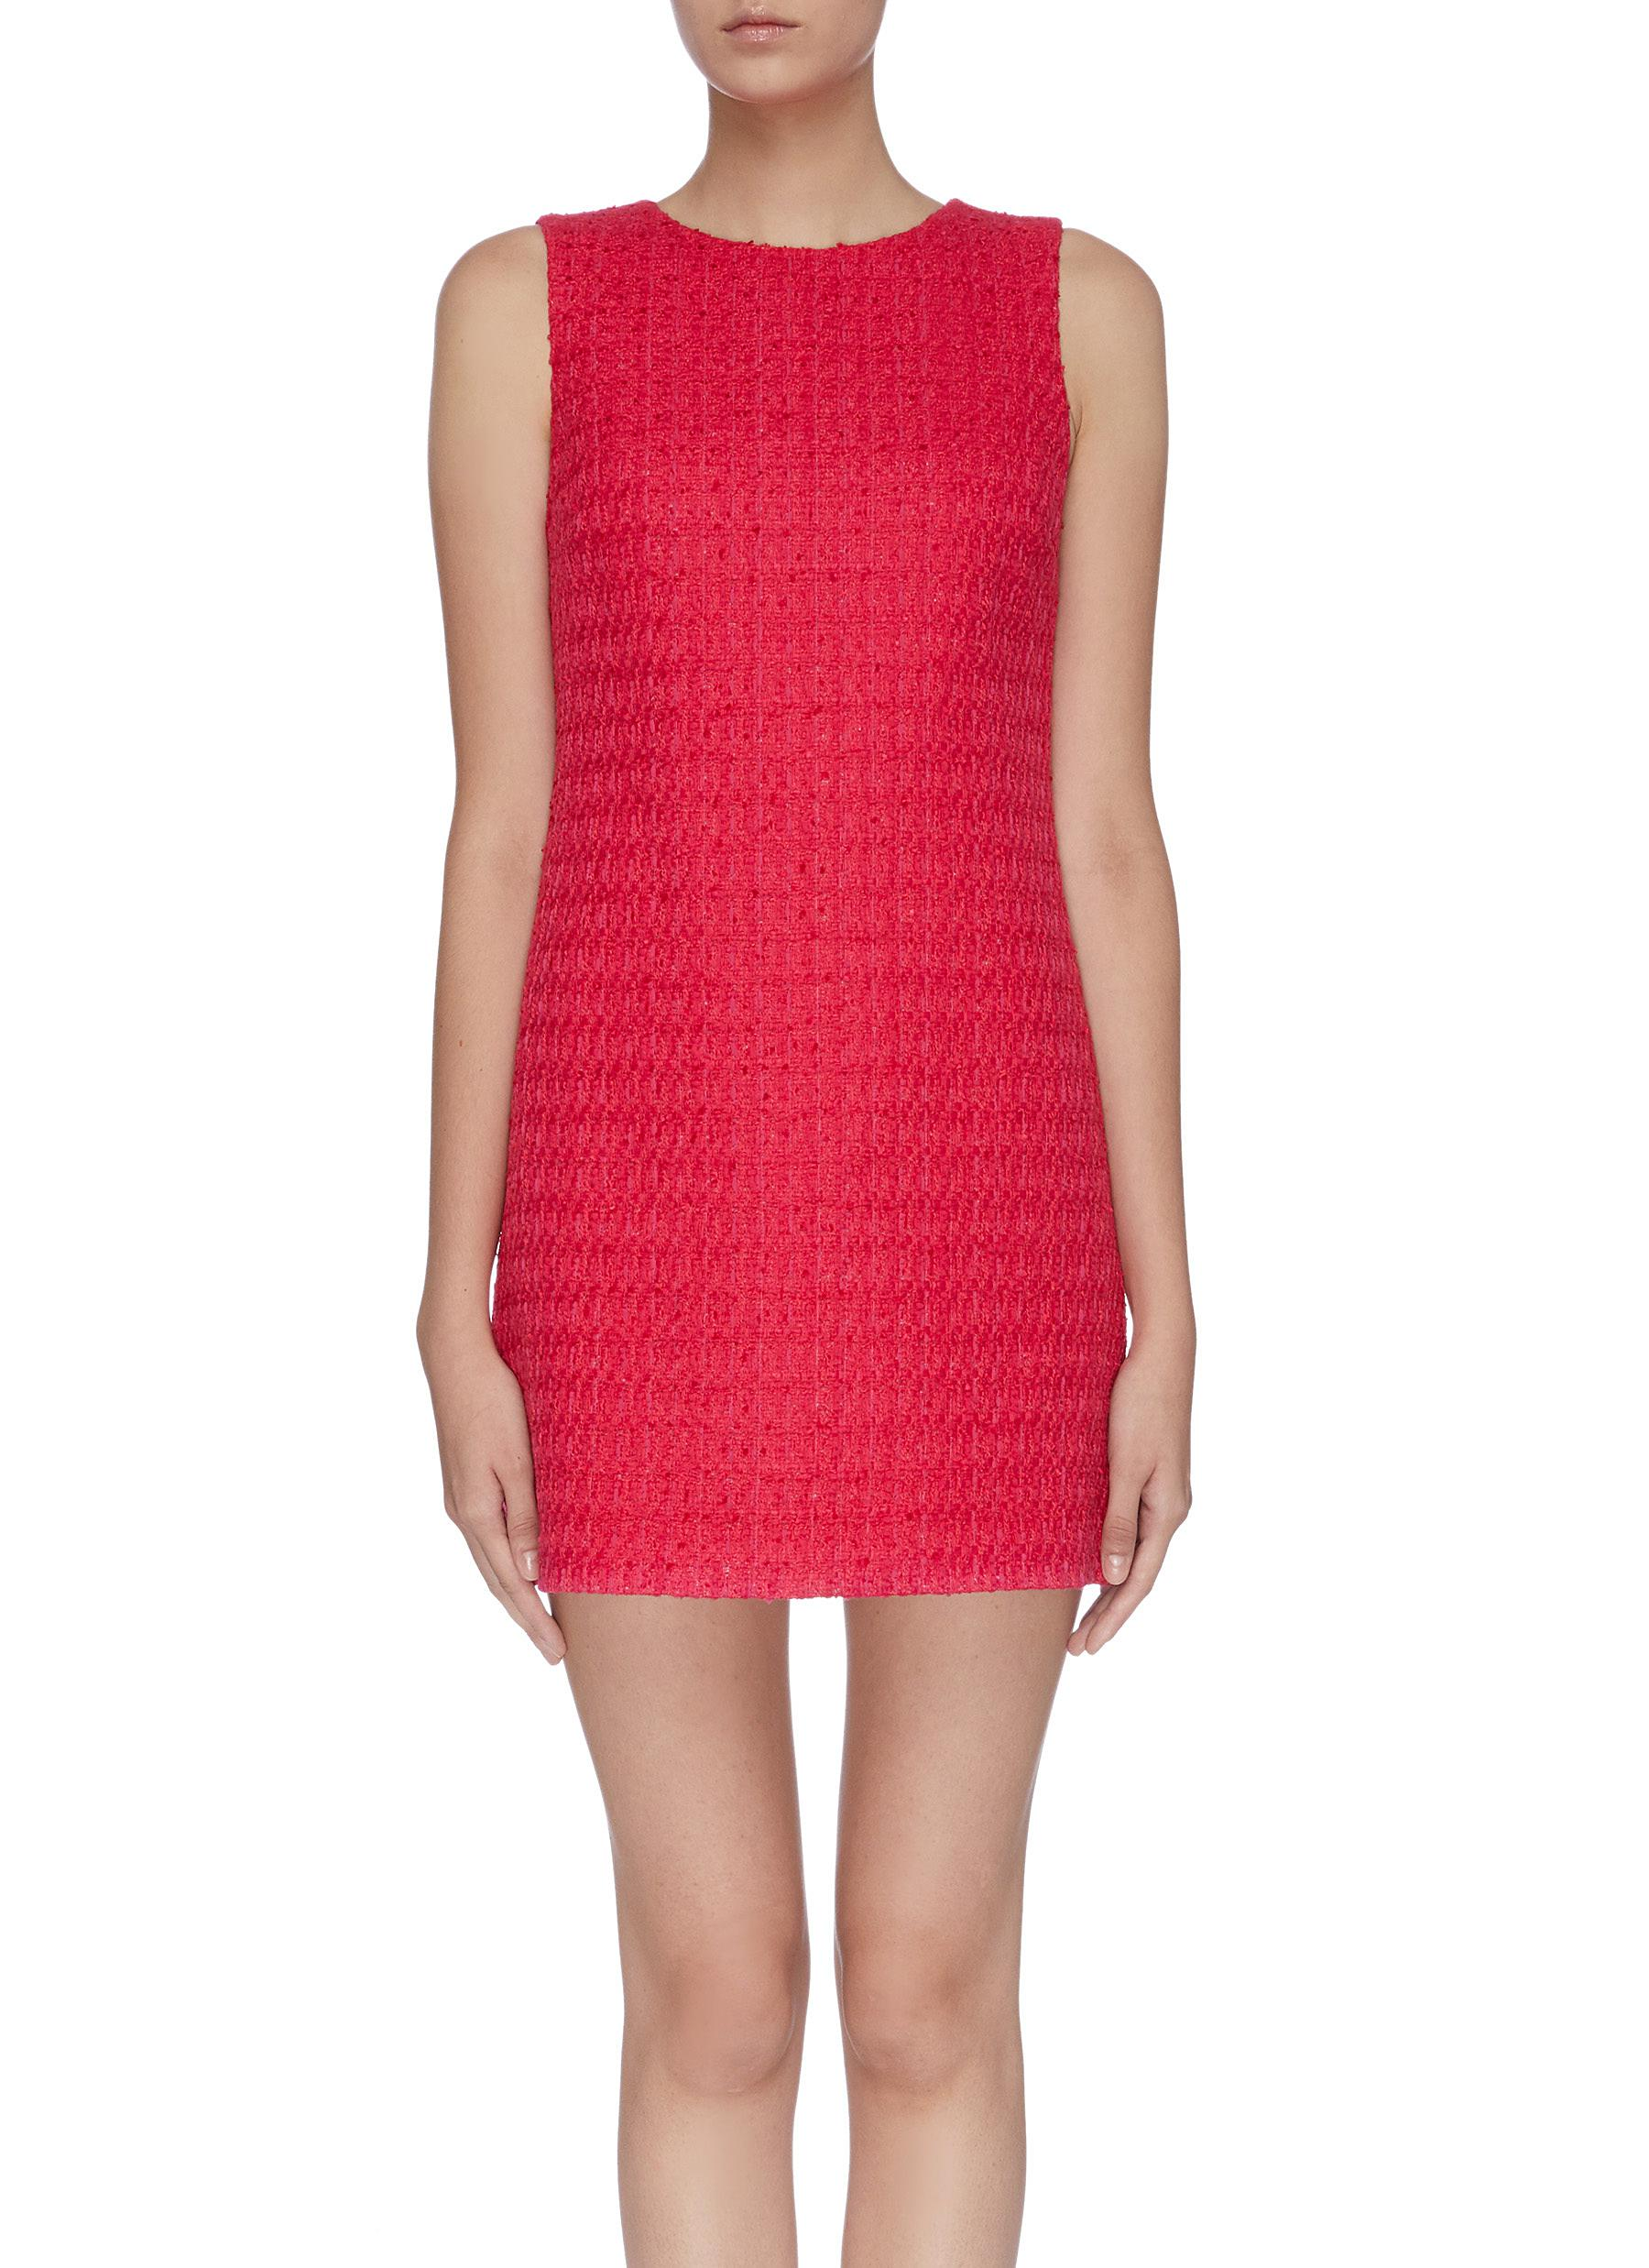 Clyde shift dress by Alice + Olivia